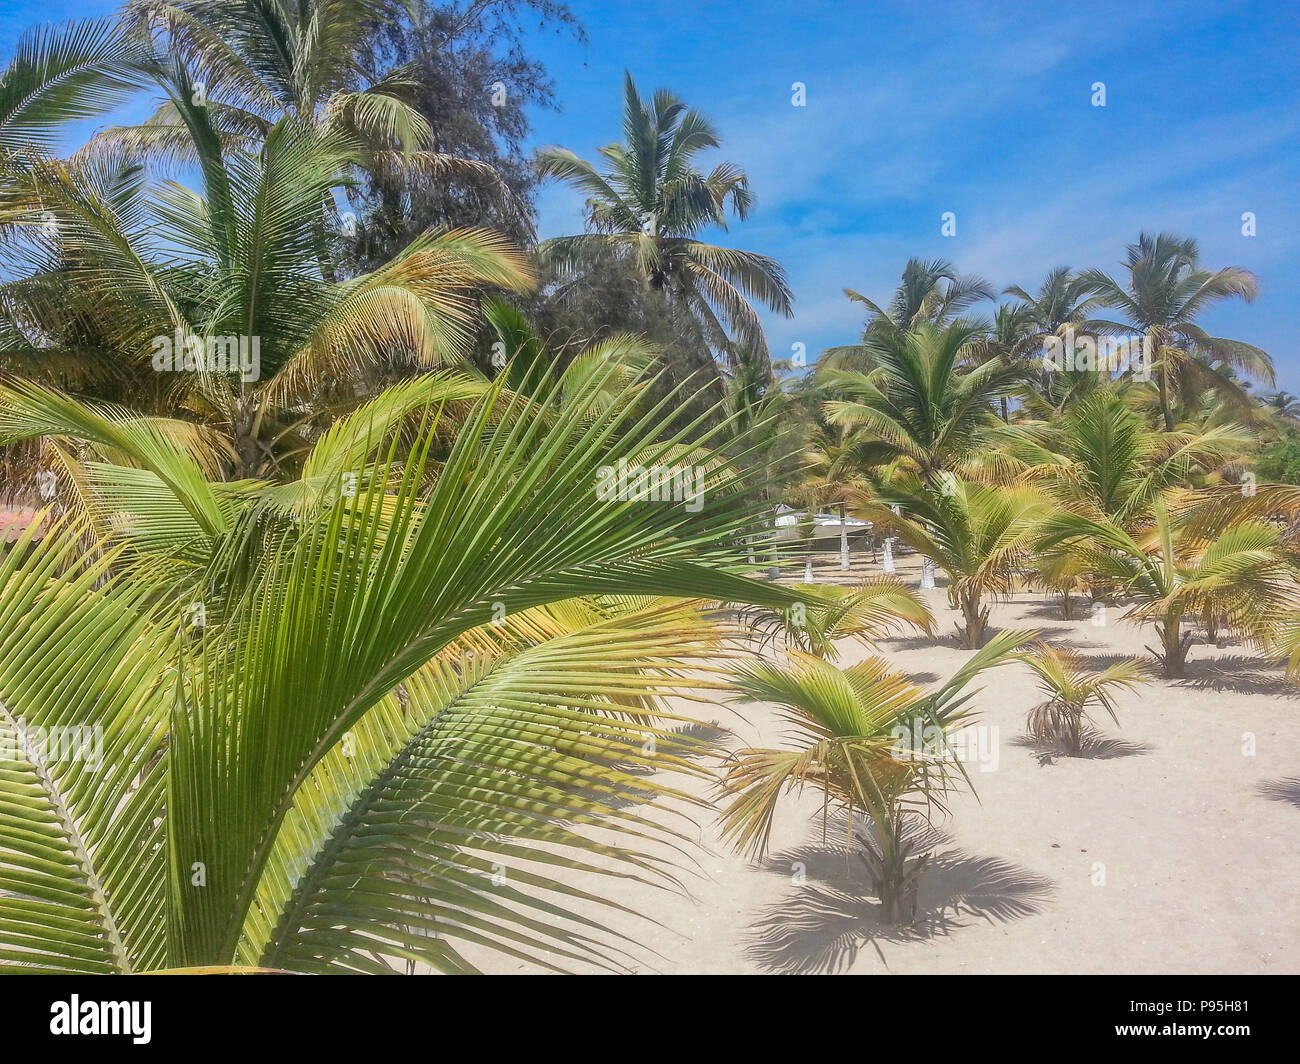 tropical beach with palm trees, sand and blue sky, located on the island of Mussulo in Luanda, Angola - Stock Image